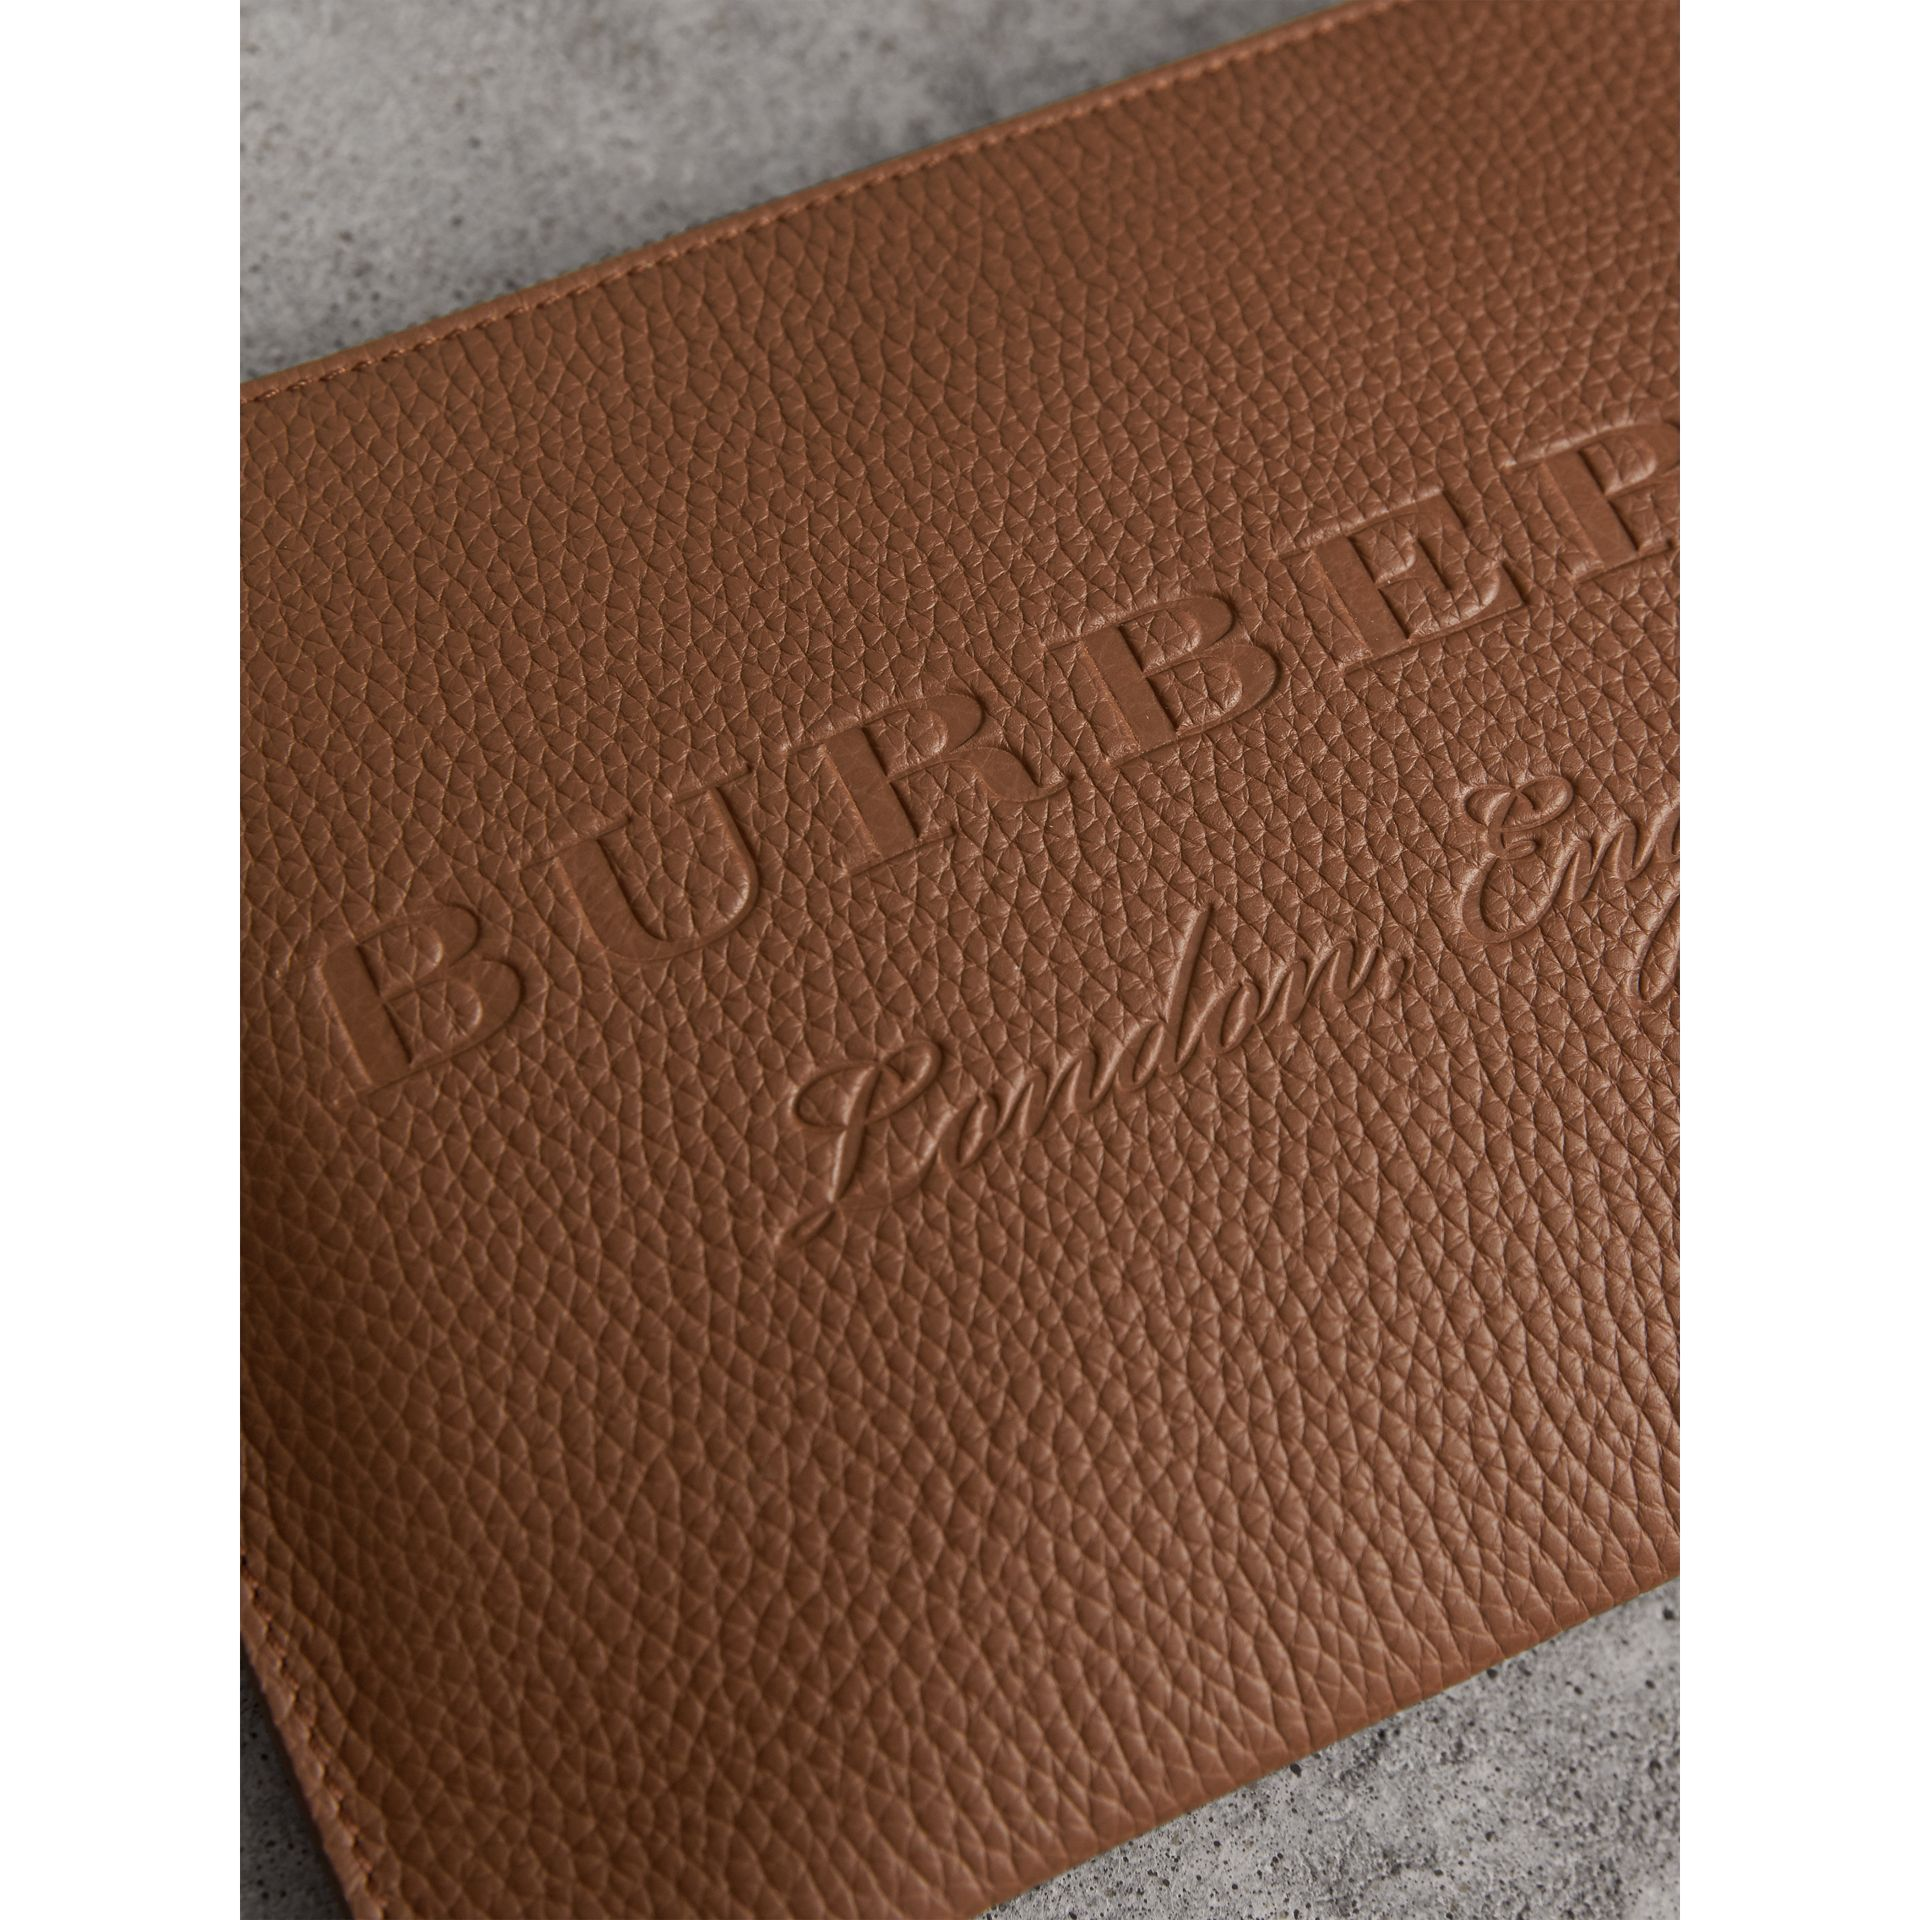 Embossed Leather Clutch Bag in Chestnut Brown - Women | Burberry - gallery image 2